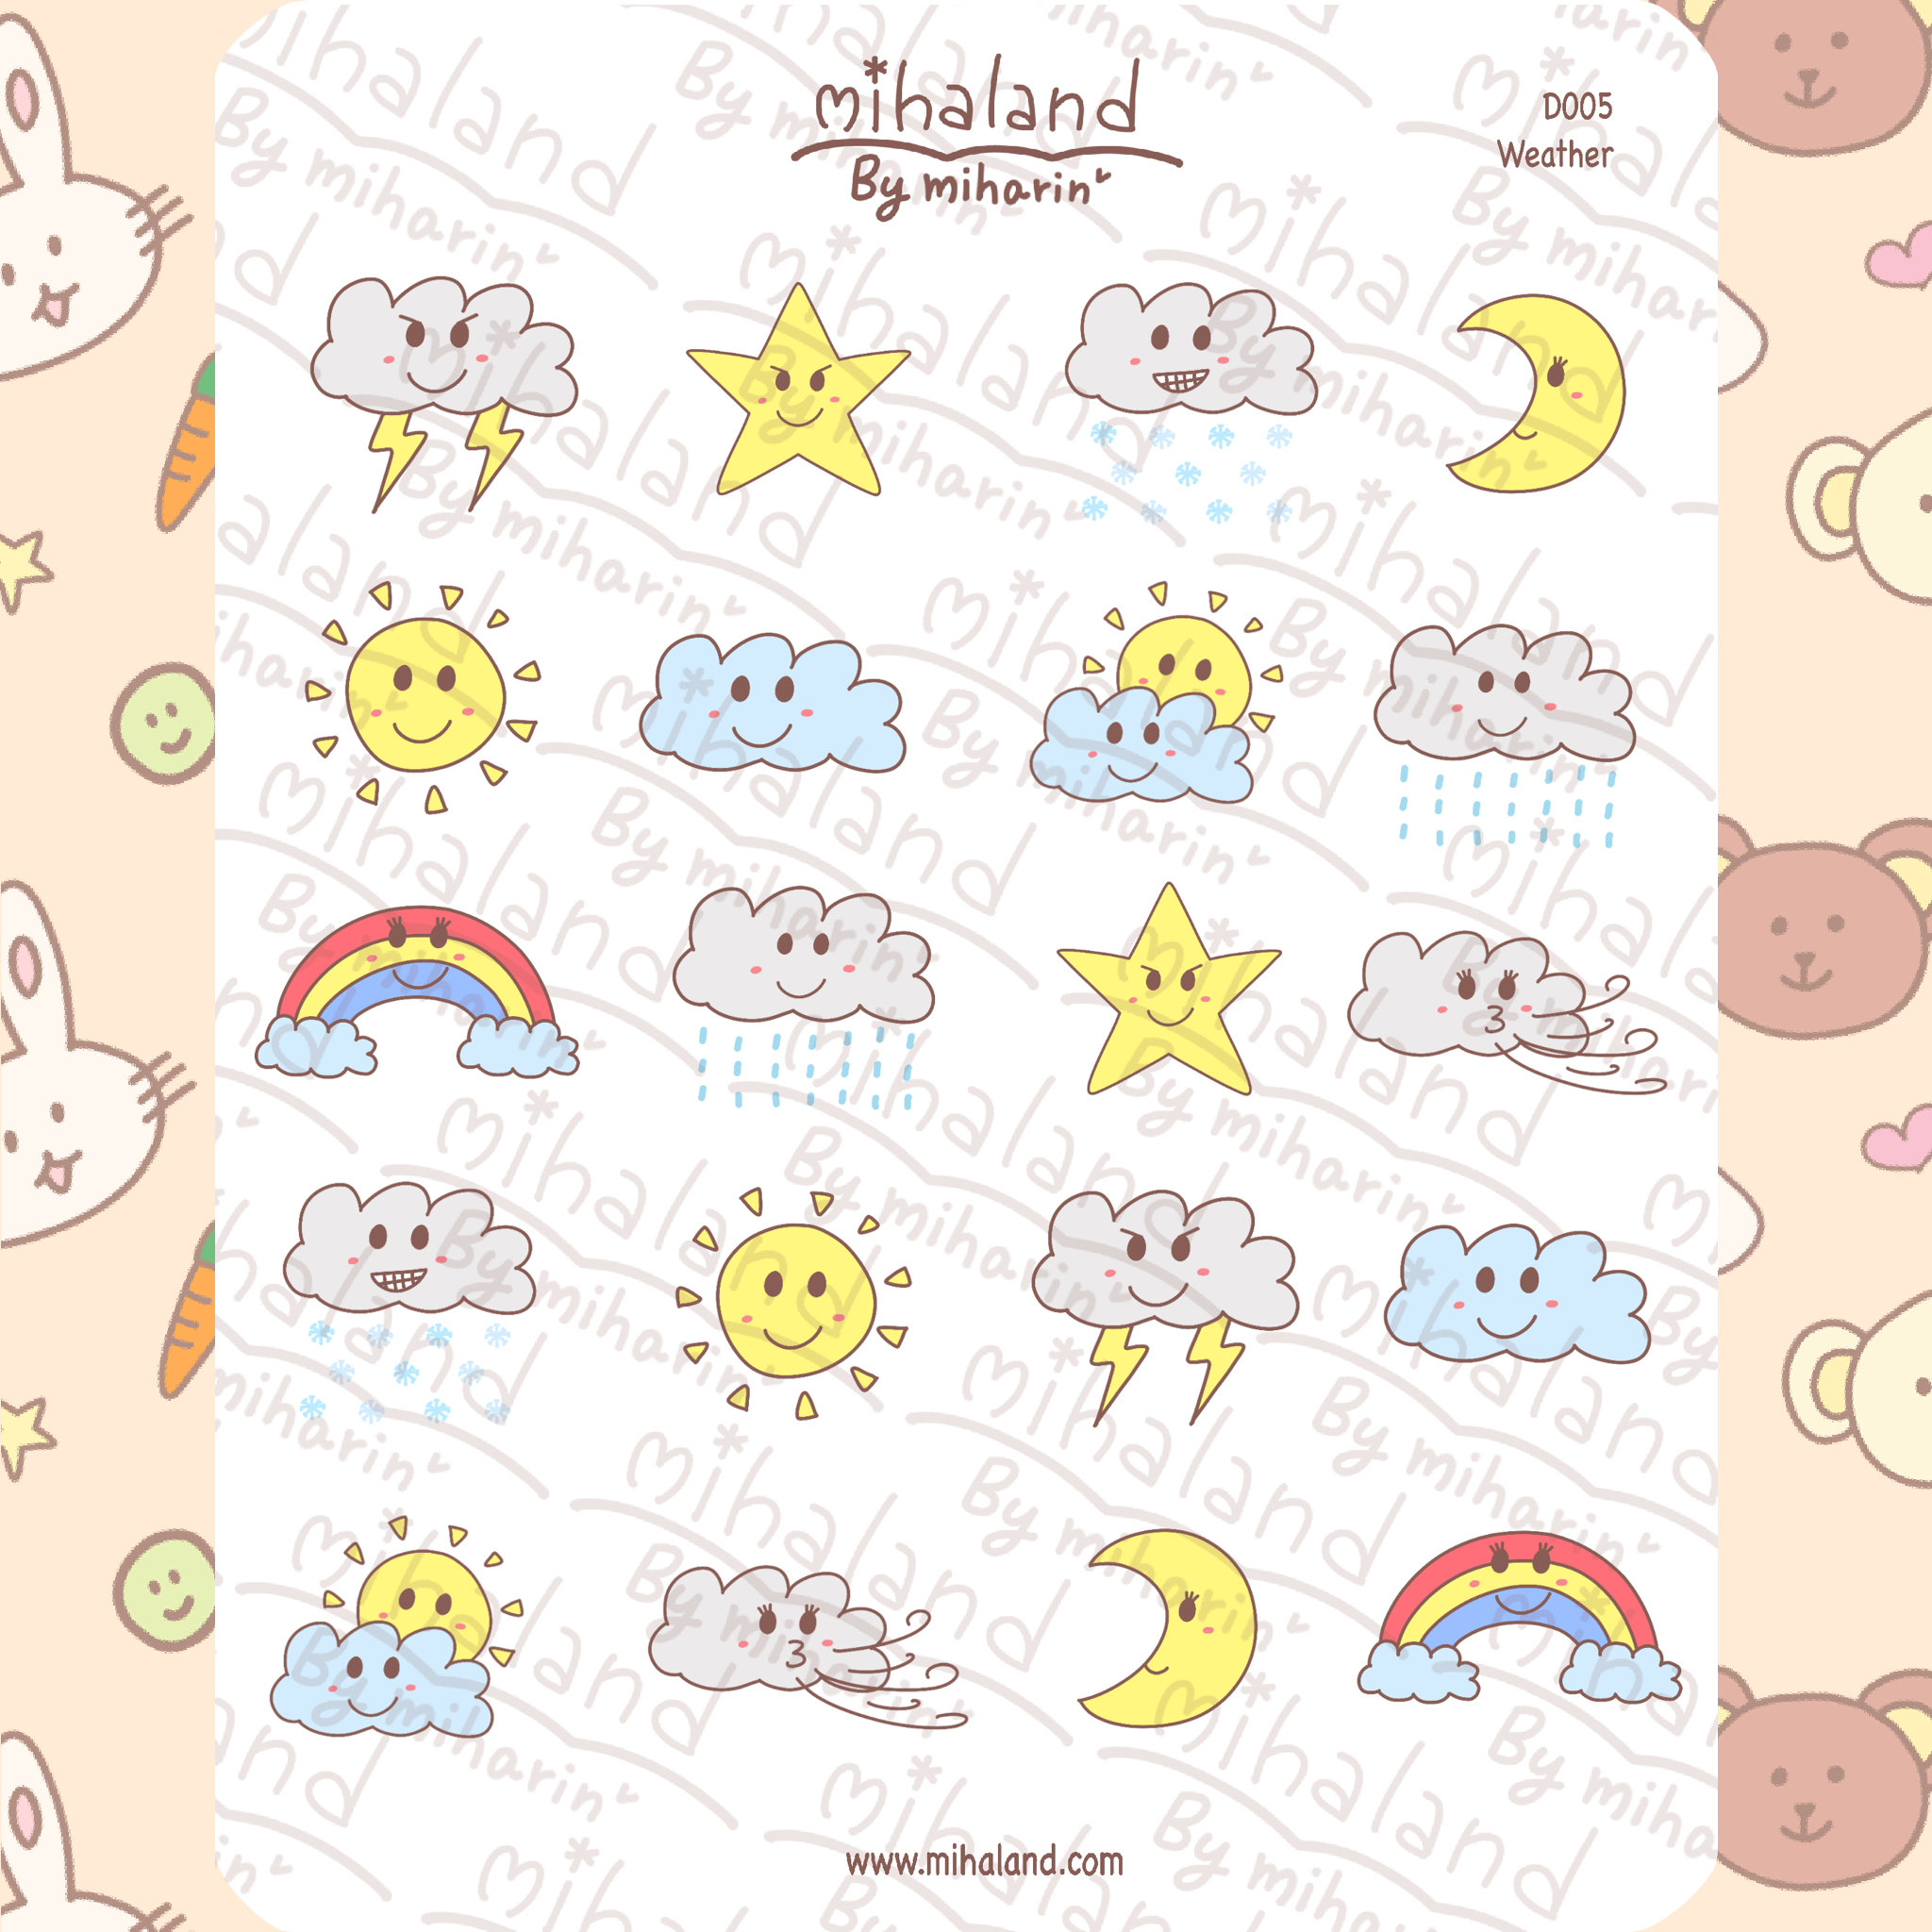 mihaland - Weather Planner Stickers (D005)